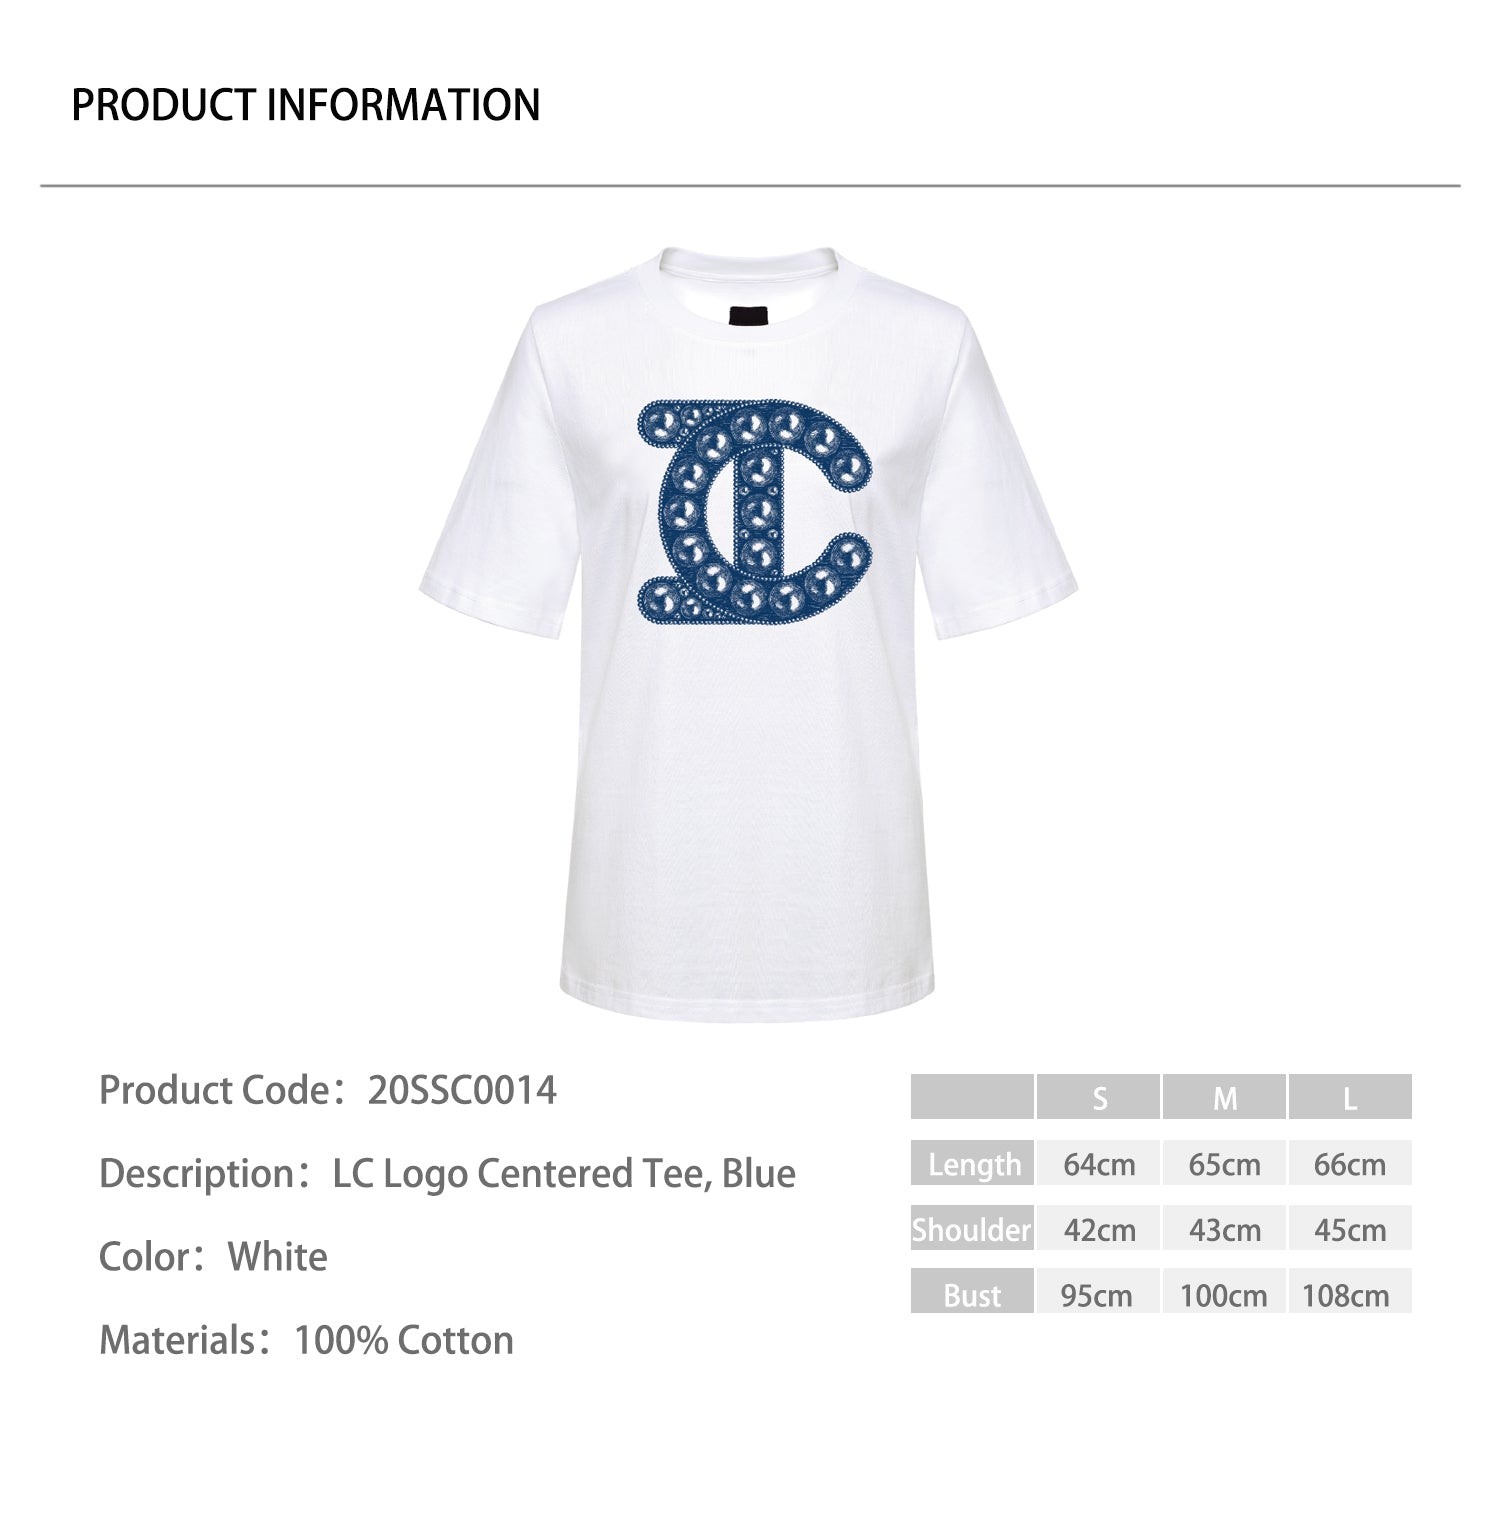 LC Logo Centered Tee, Blue